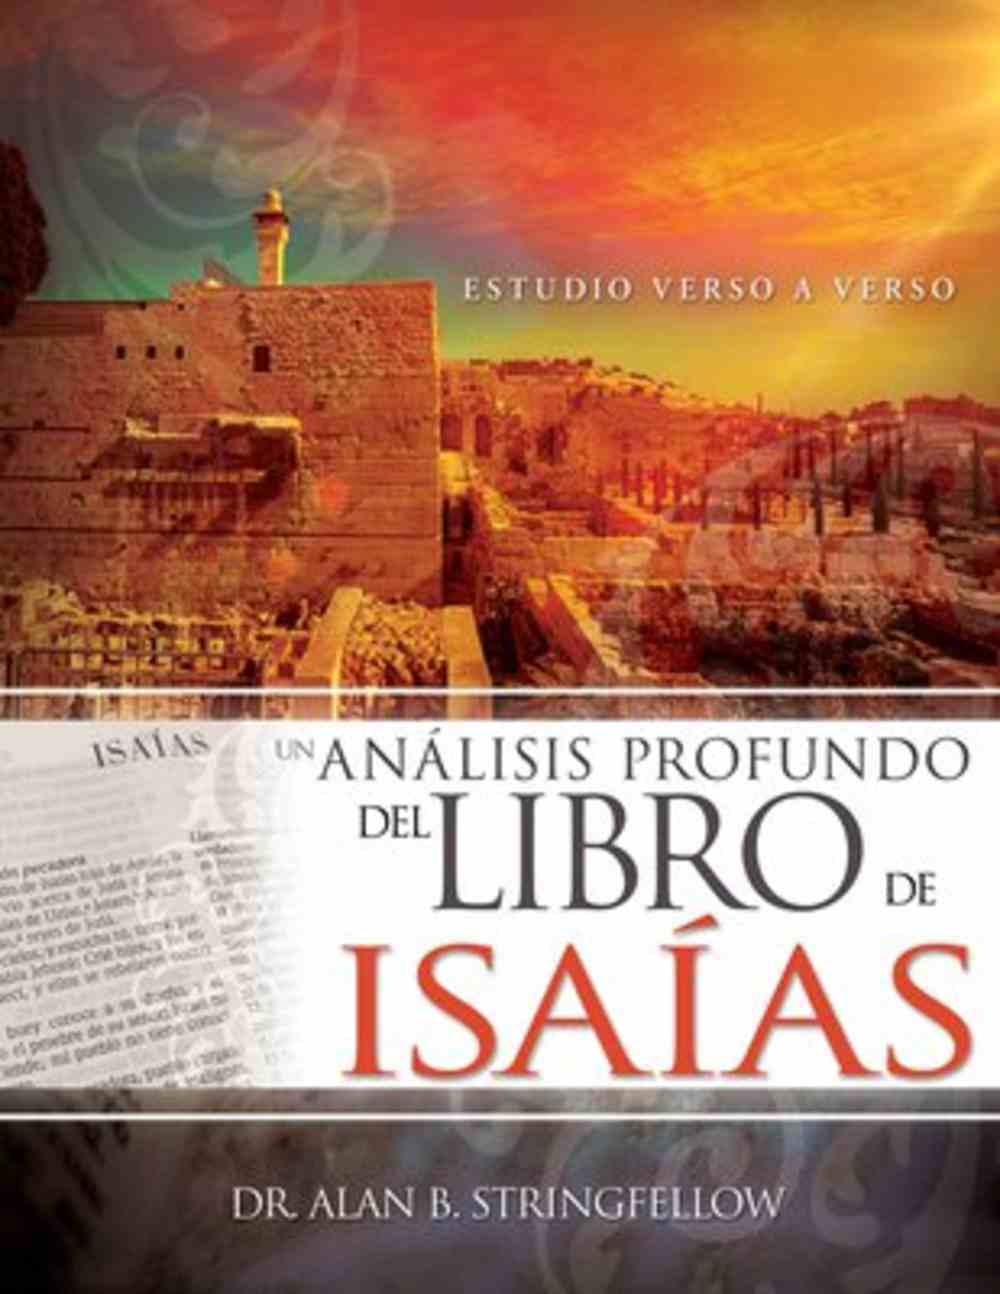 Analisis Profundo Del Libro De Isaias, Un: Estudio Verso a Verso (A Deep Analysis Of The Book Of Isaiah) Paperback